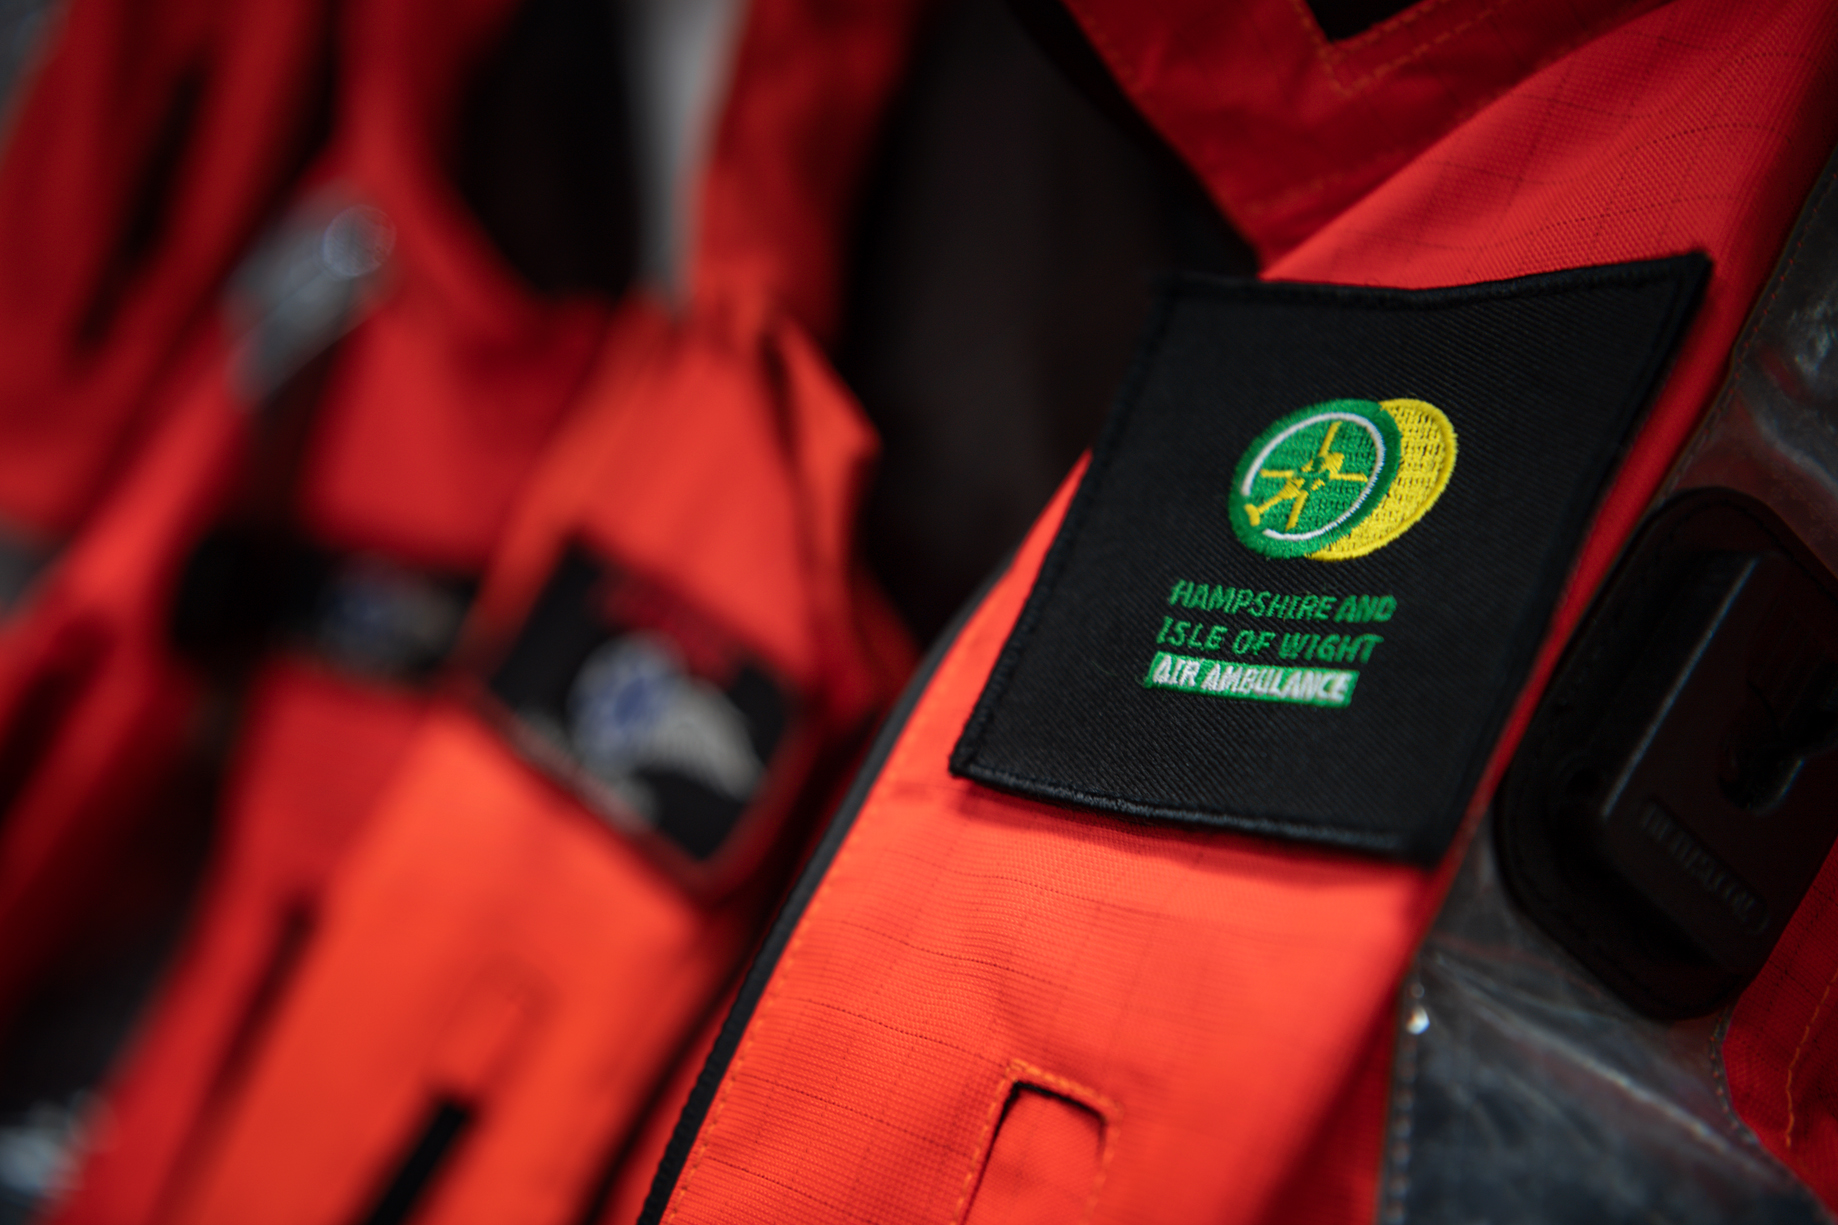 Crew flight suits are hanging on their pegs. The Hampshire and Isle of Wight Air Ambulance logo is in view.